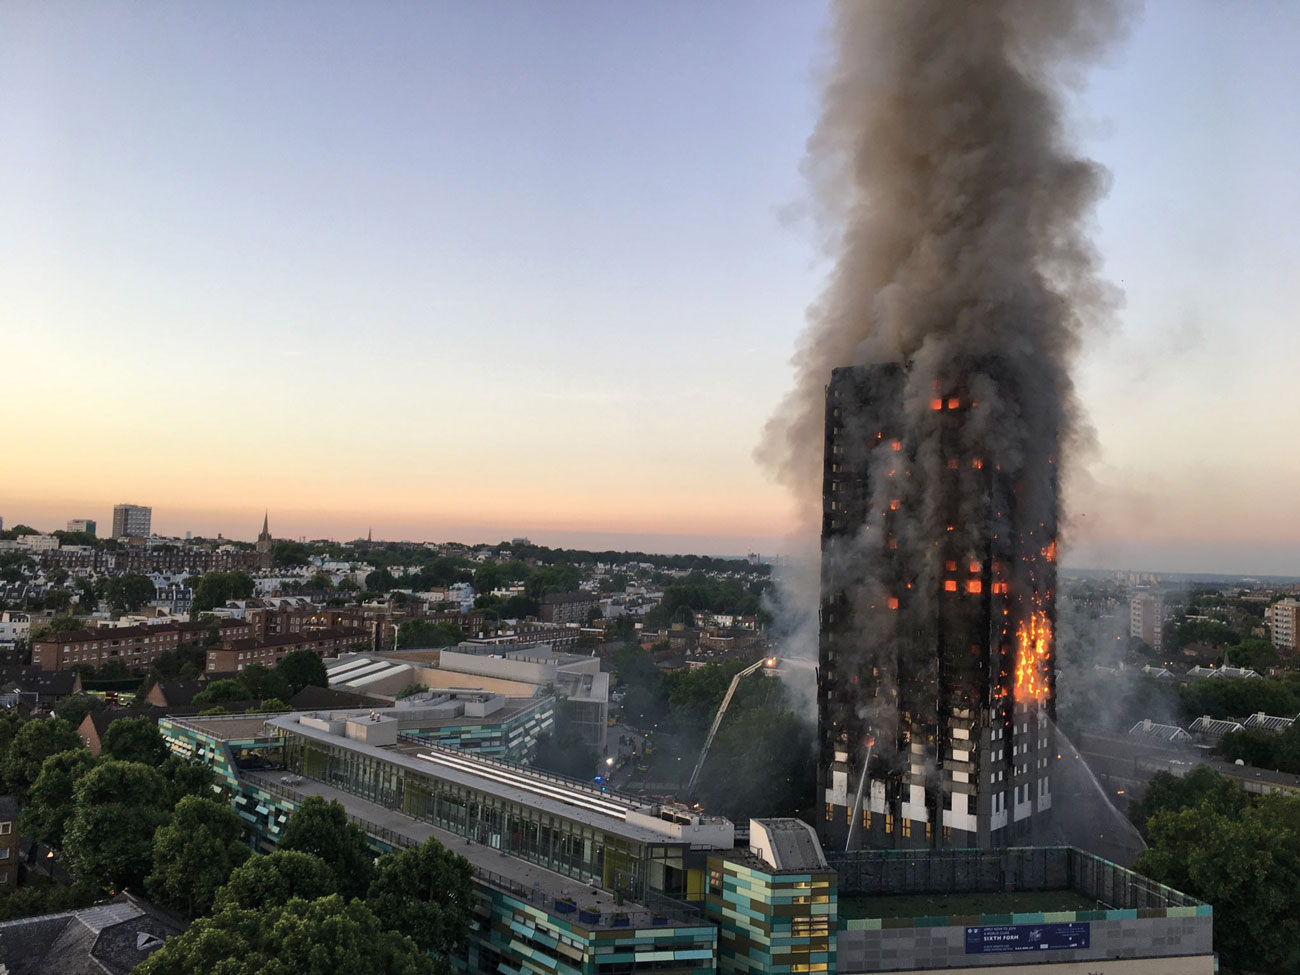 The tragic incident at Grenfell proved inadequacies in the understanding of the certification process and approvals.